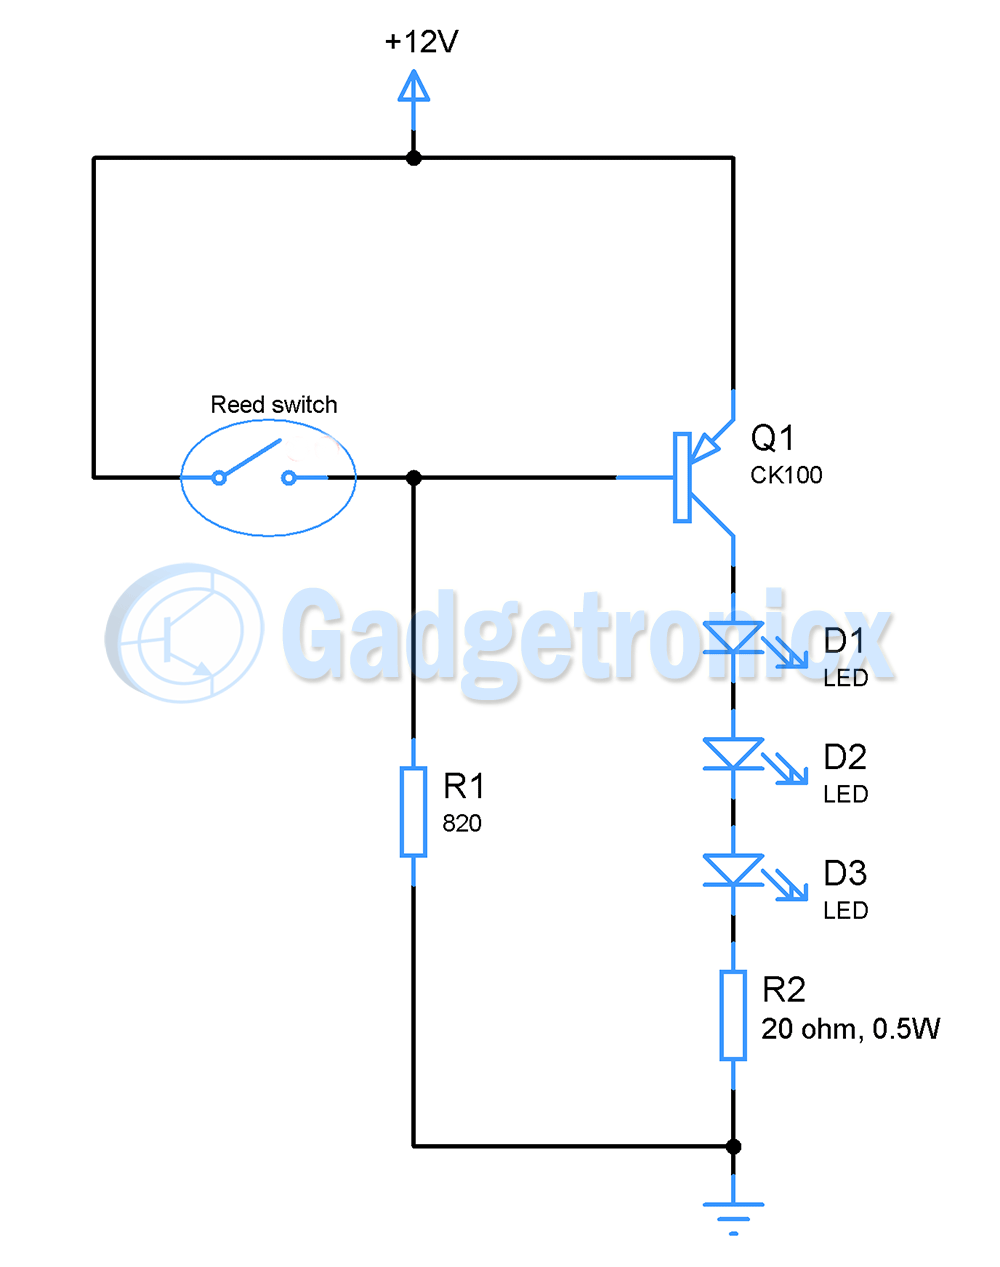 cupboard lighting circuit using transistor electronicsimple diy cupboard lighting circuit that can be assembled in a genral pcb board this is a high power led lighting electronic circuit to light cupboards